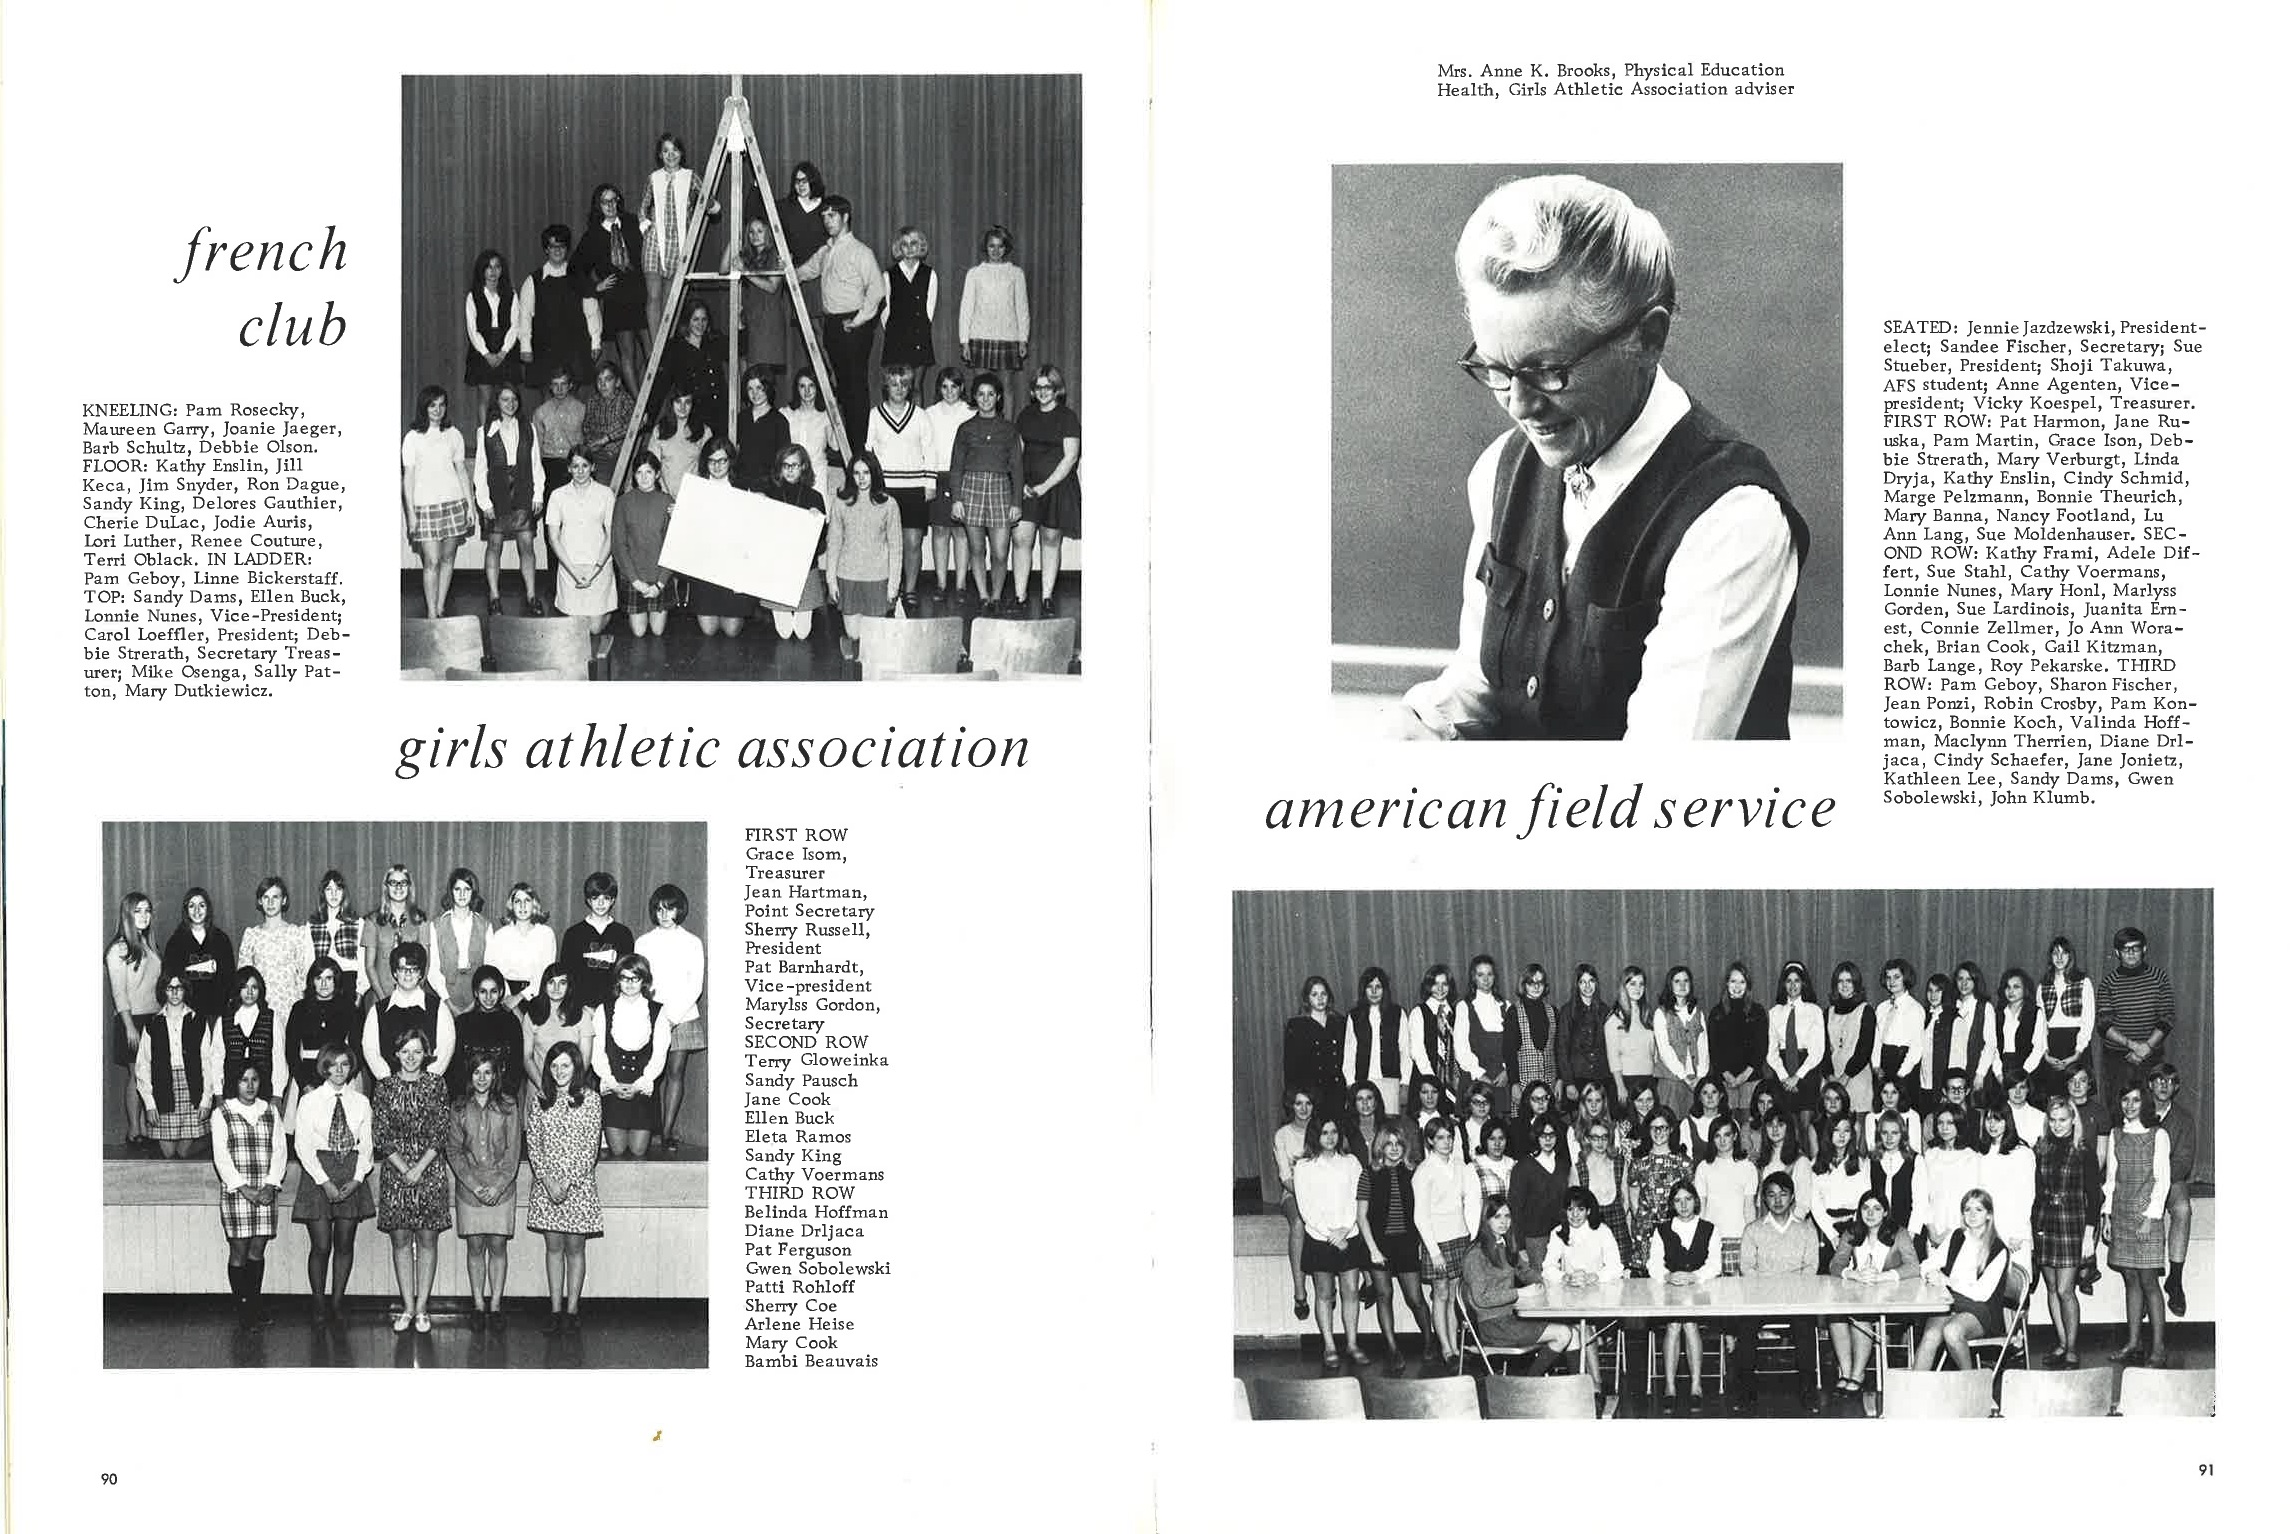 1970_Yearbook_90-91.jpg